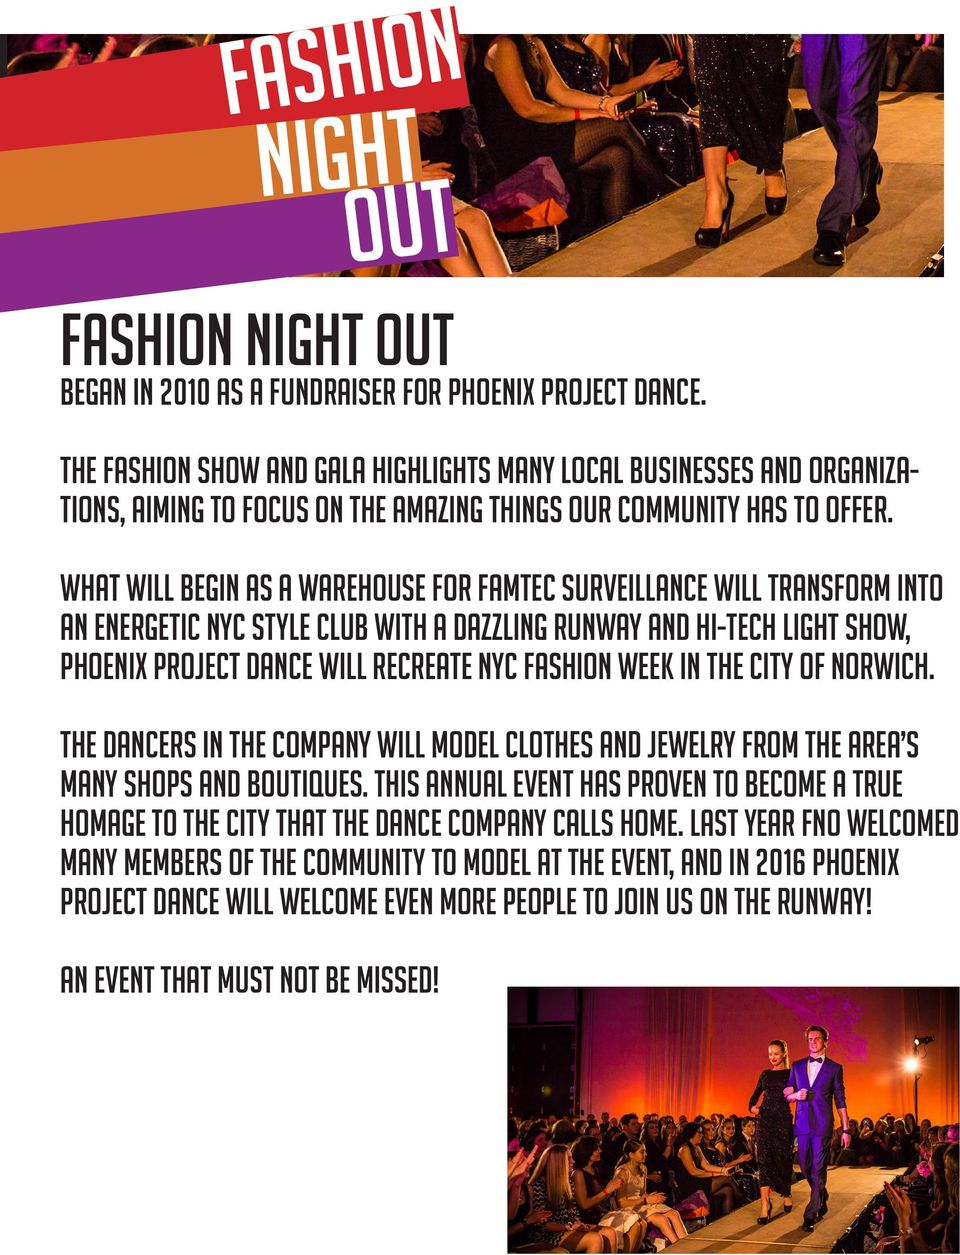 What will begin as a warehouse for Famtec Surveillance will transform into an energetic NYC style club With a dazzling runway and Hi-Tech light show, Phoenix Project Dance will recreate NYC Fashion